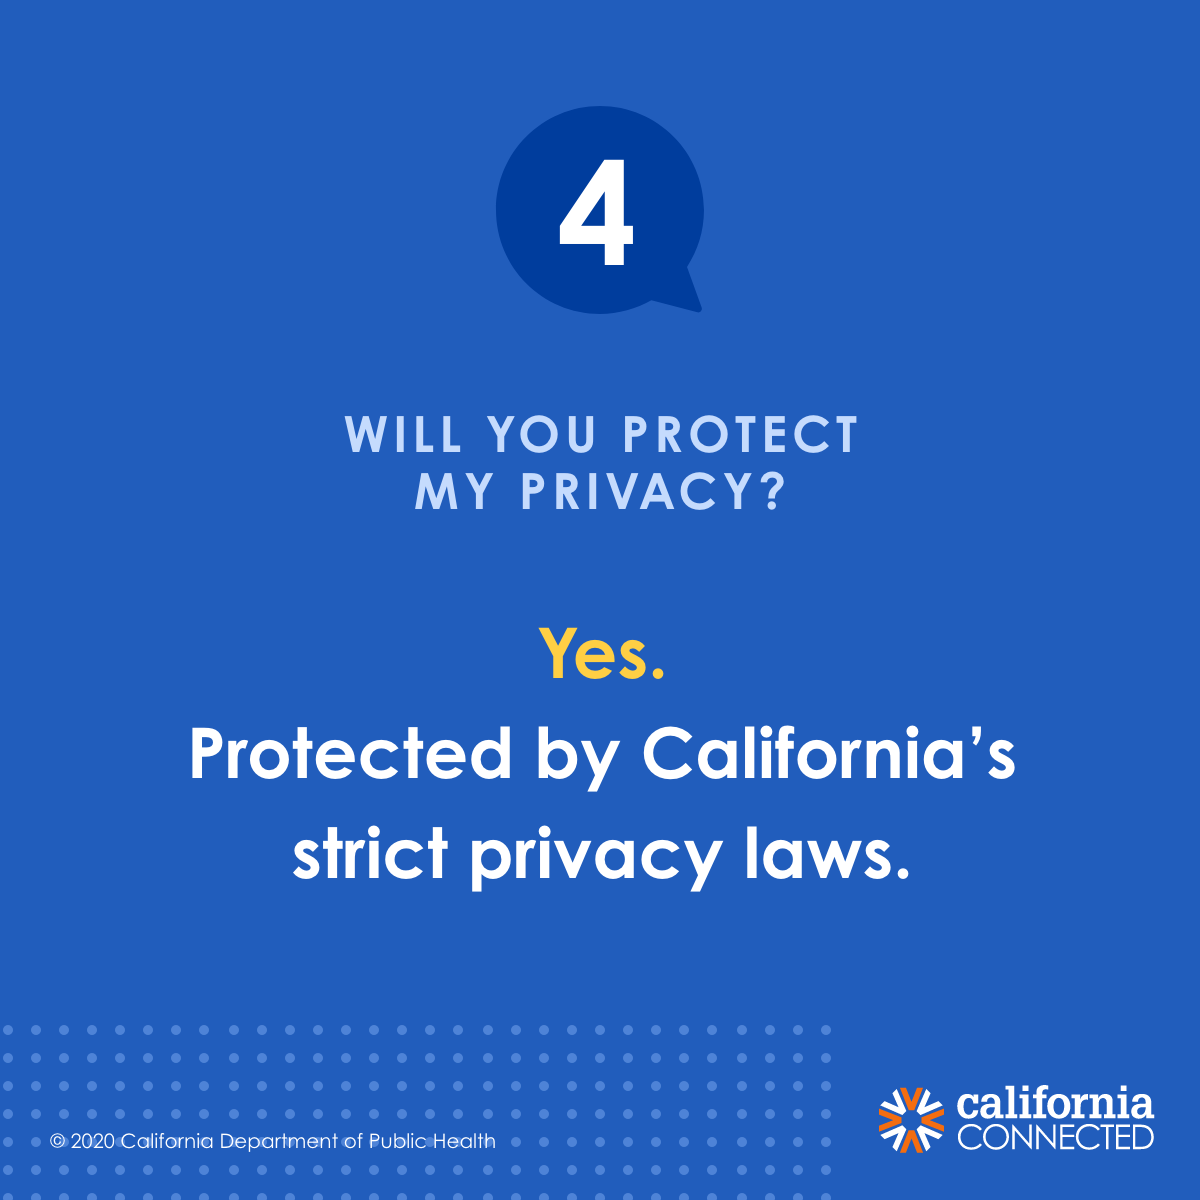 If I participate in contact tracing, will you protect my privacy? Yes. Your privacy is protected by California's strict privacy laws.